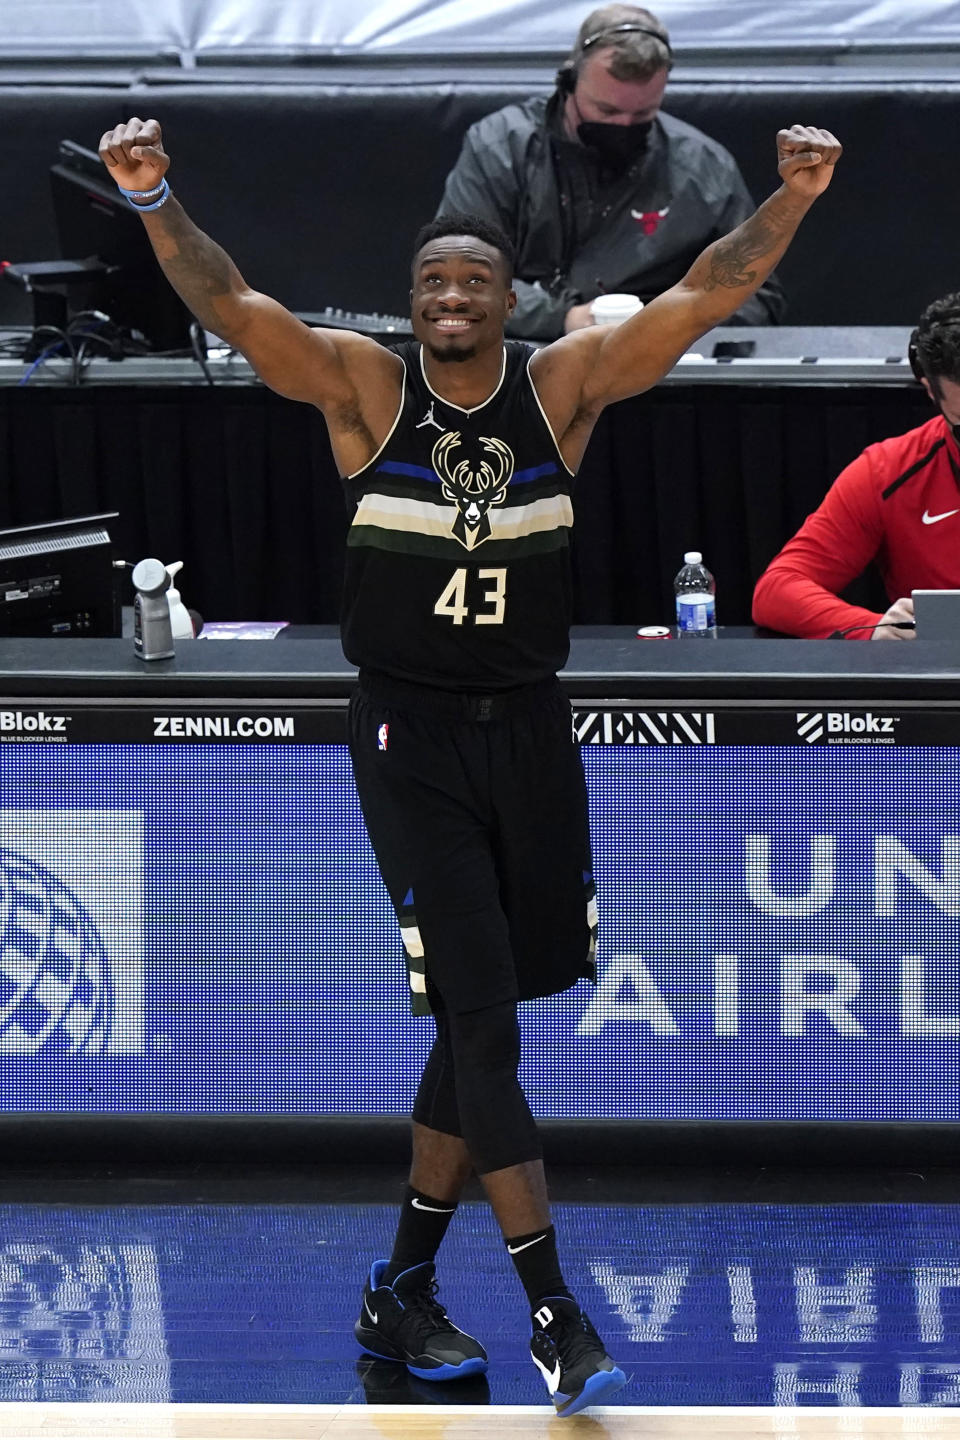 Milwaukee Bucks forward Thanasis Antetokounmpo looks up the score board as celebrates after guard Elijah Bryant scored a basket during the first half of an NBA basketball game against the Chicago Bulls in Chicago, Sunday, May 16, 2021. (AP Photo/Nam Y. Huh)